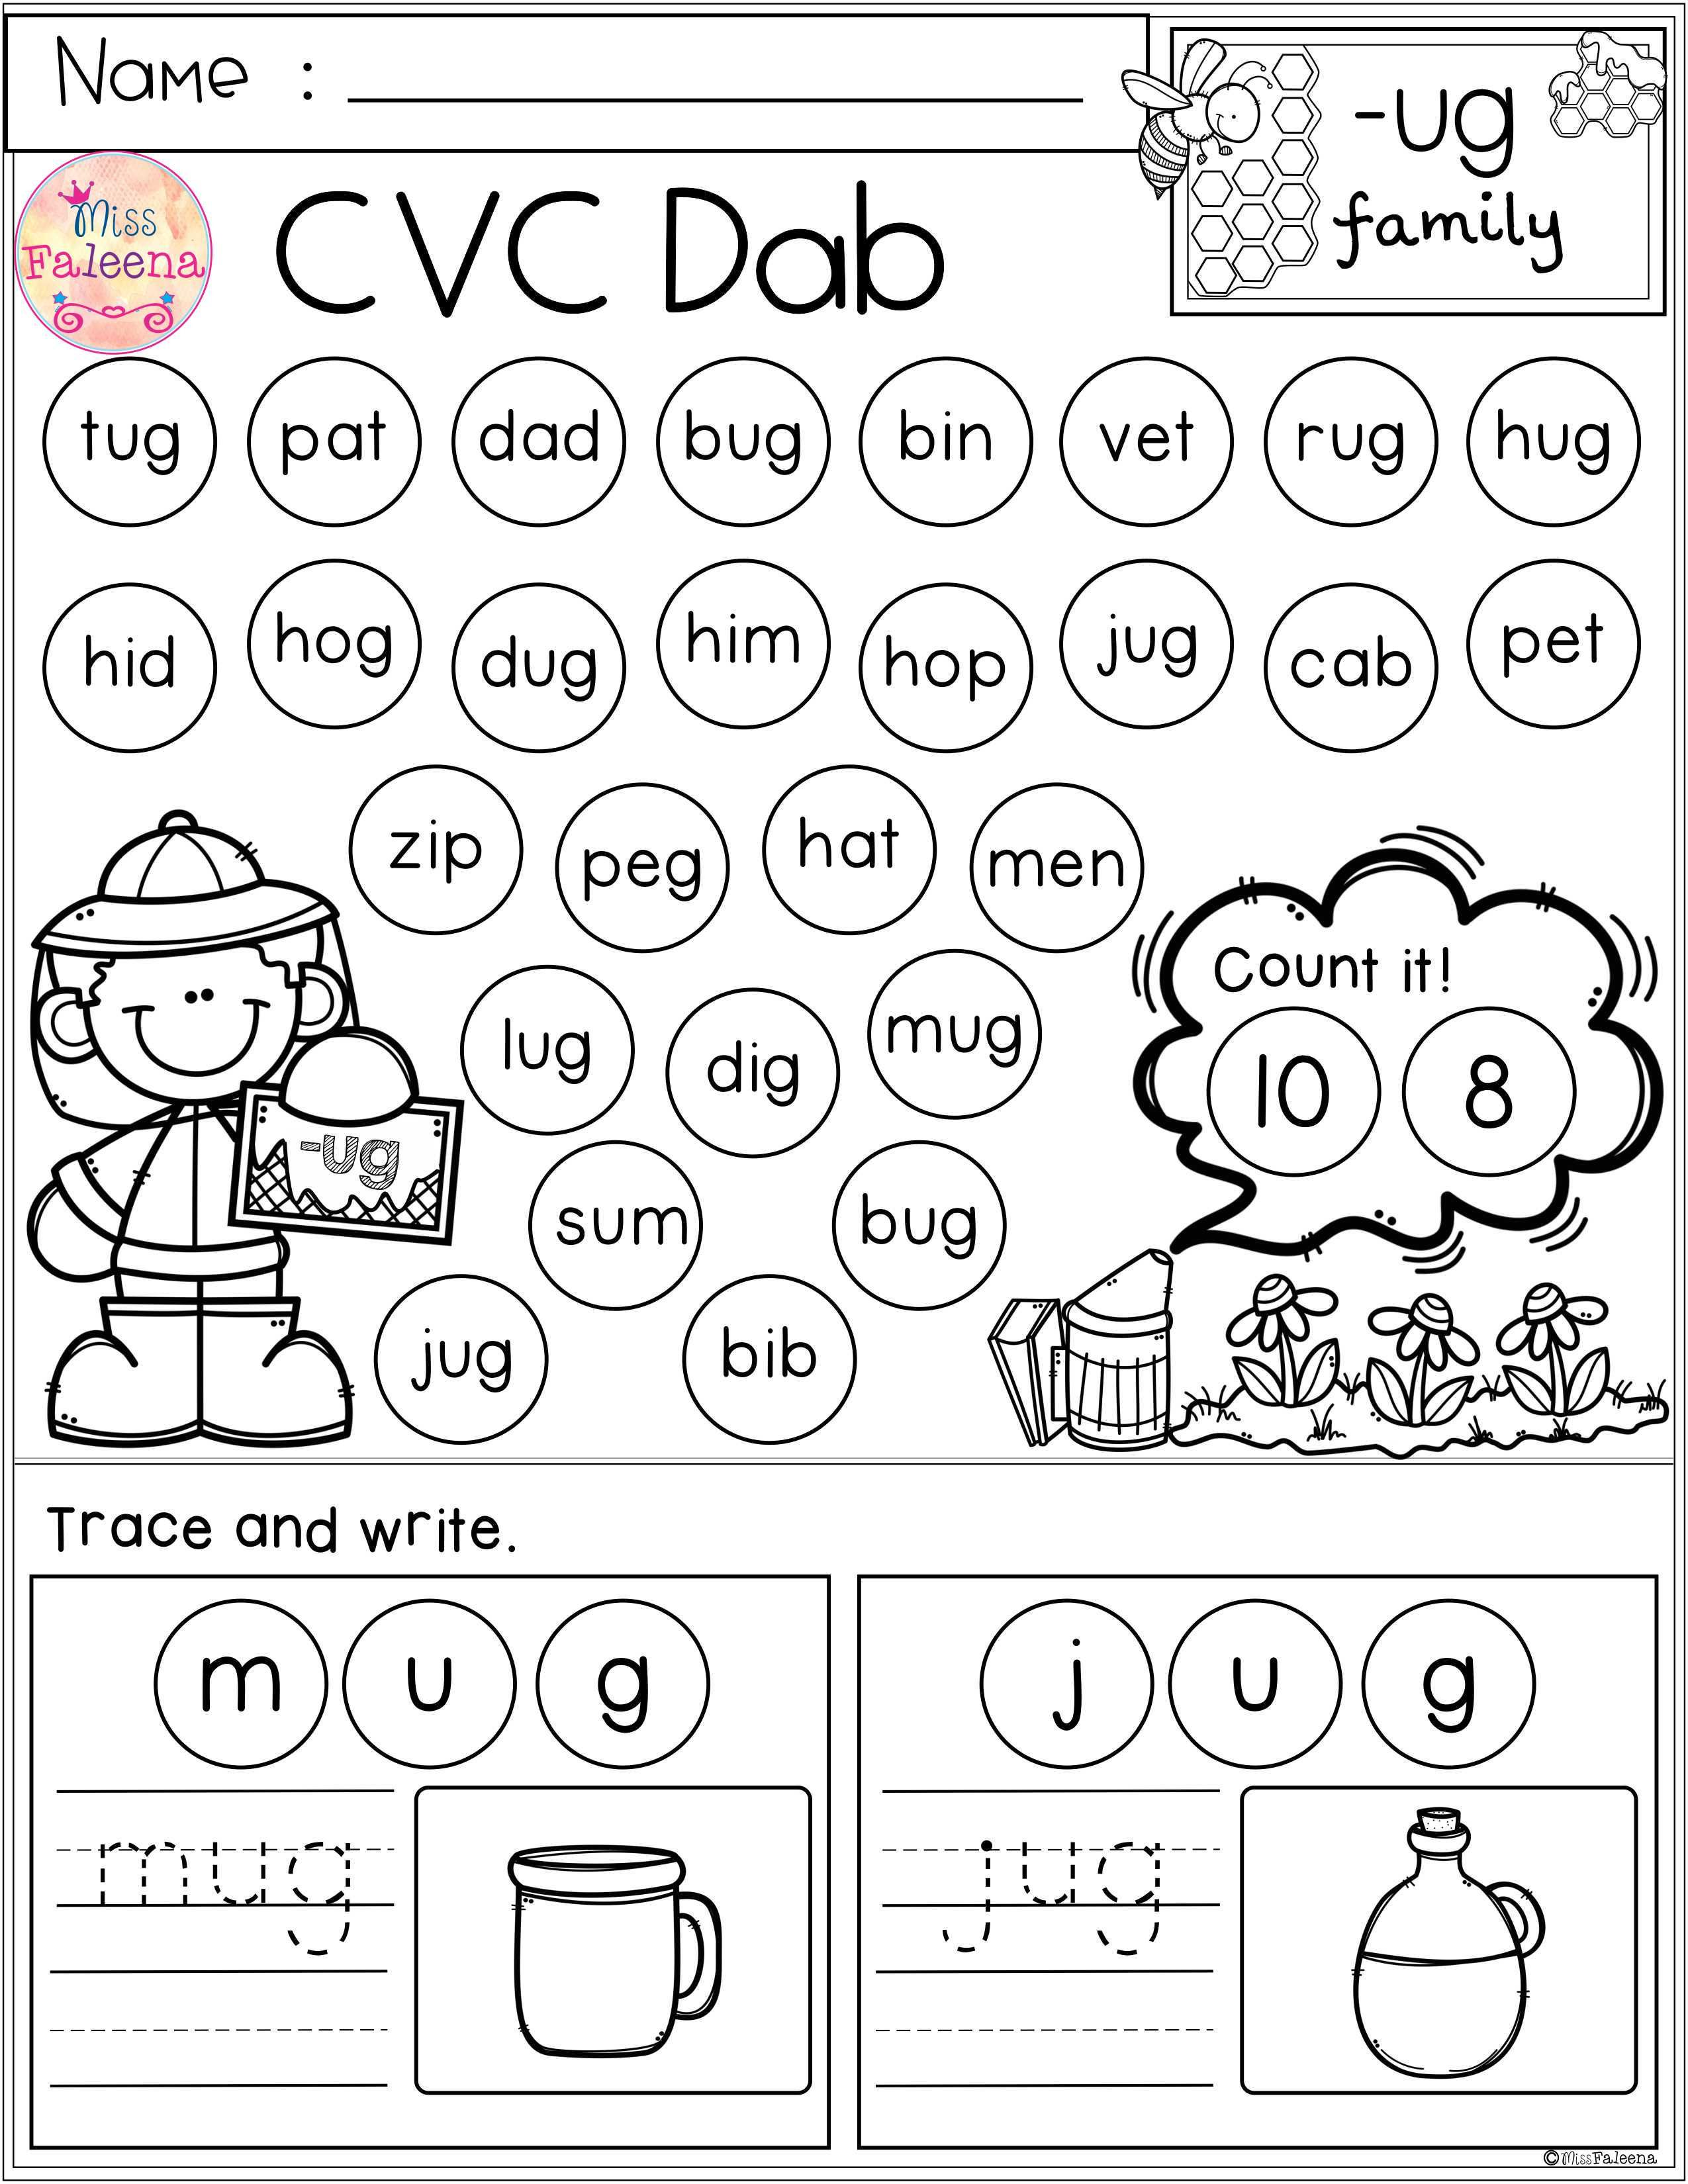 Free Cvc Dab Has 6 Pages Of Cvc Dab Worksheets This Product Will Help Children To Learn Cvc Words By Finding Cvc Worksheets Cvc Words Kindergarten Worksheets [ 3300 x 2550 Pixel ]